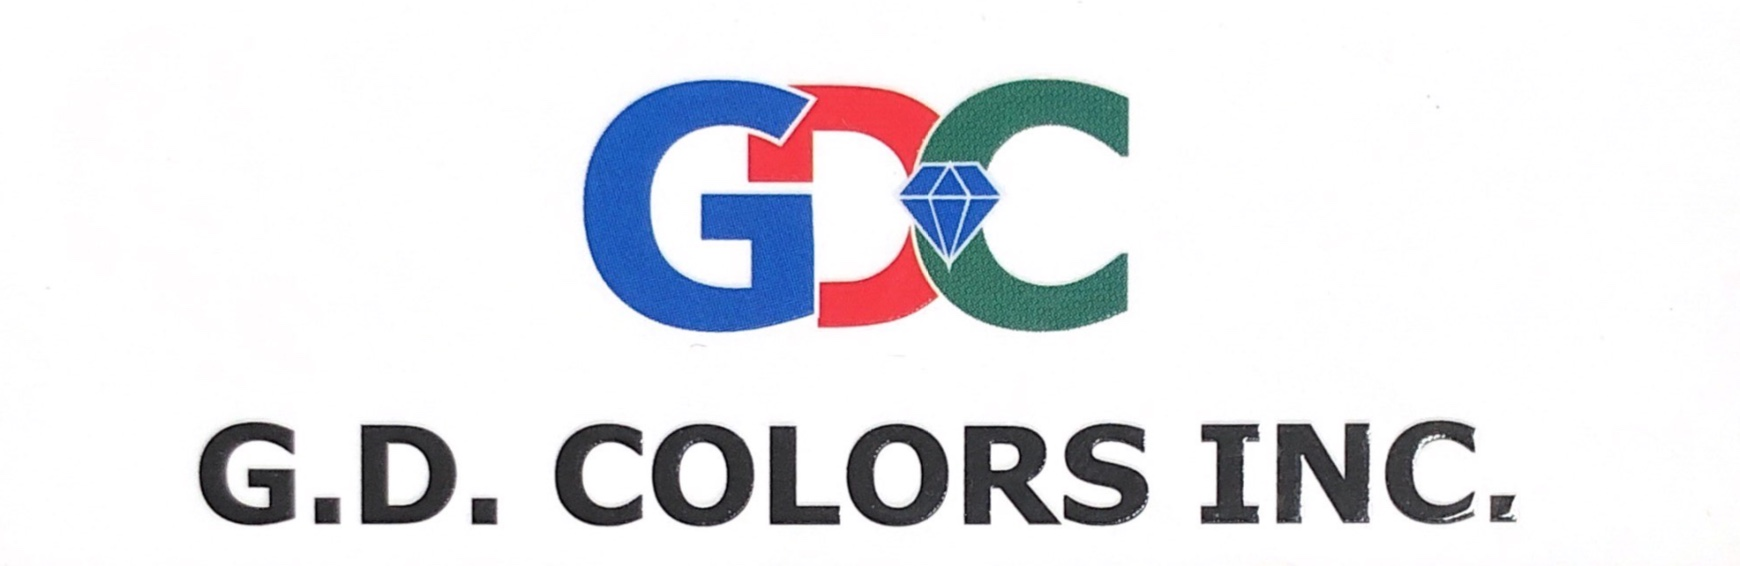 G.D. Colors Inc.